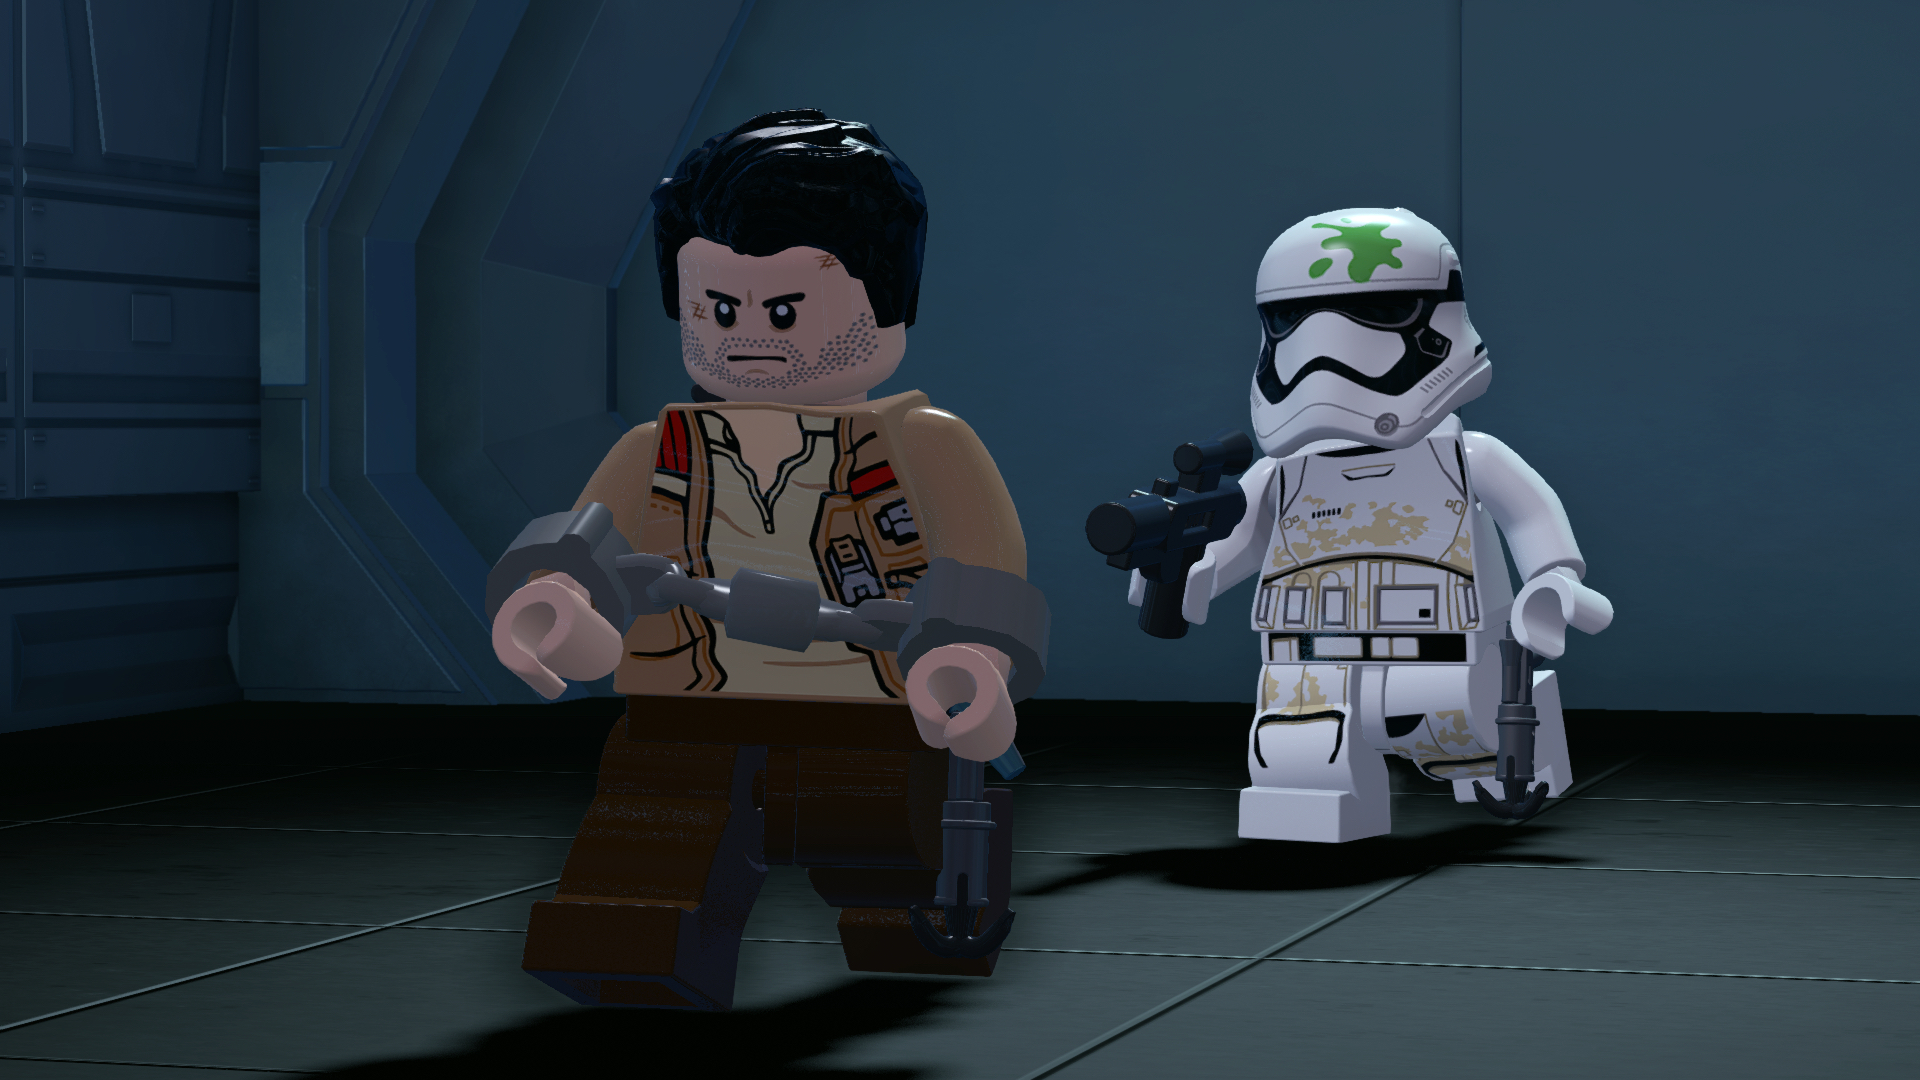 Lego Star Wars The Force Awakens Footage Shows Off New Features Godisageek Com